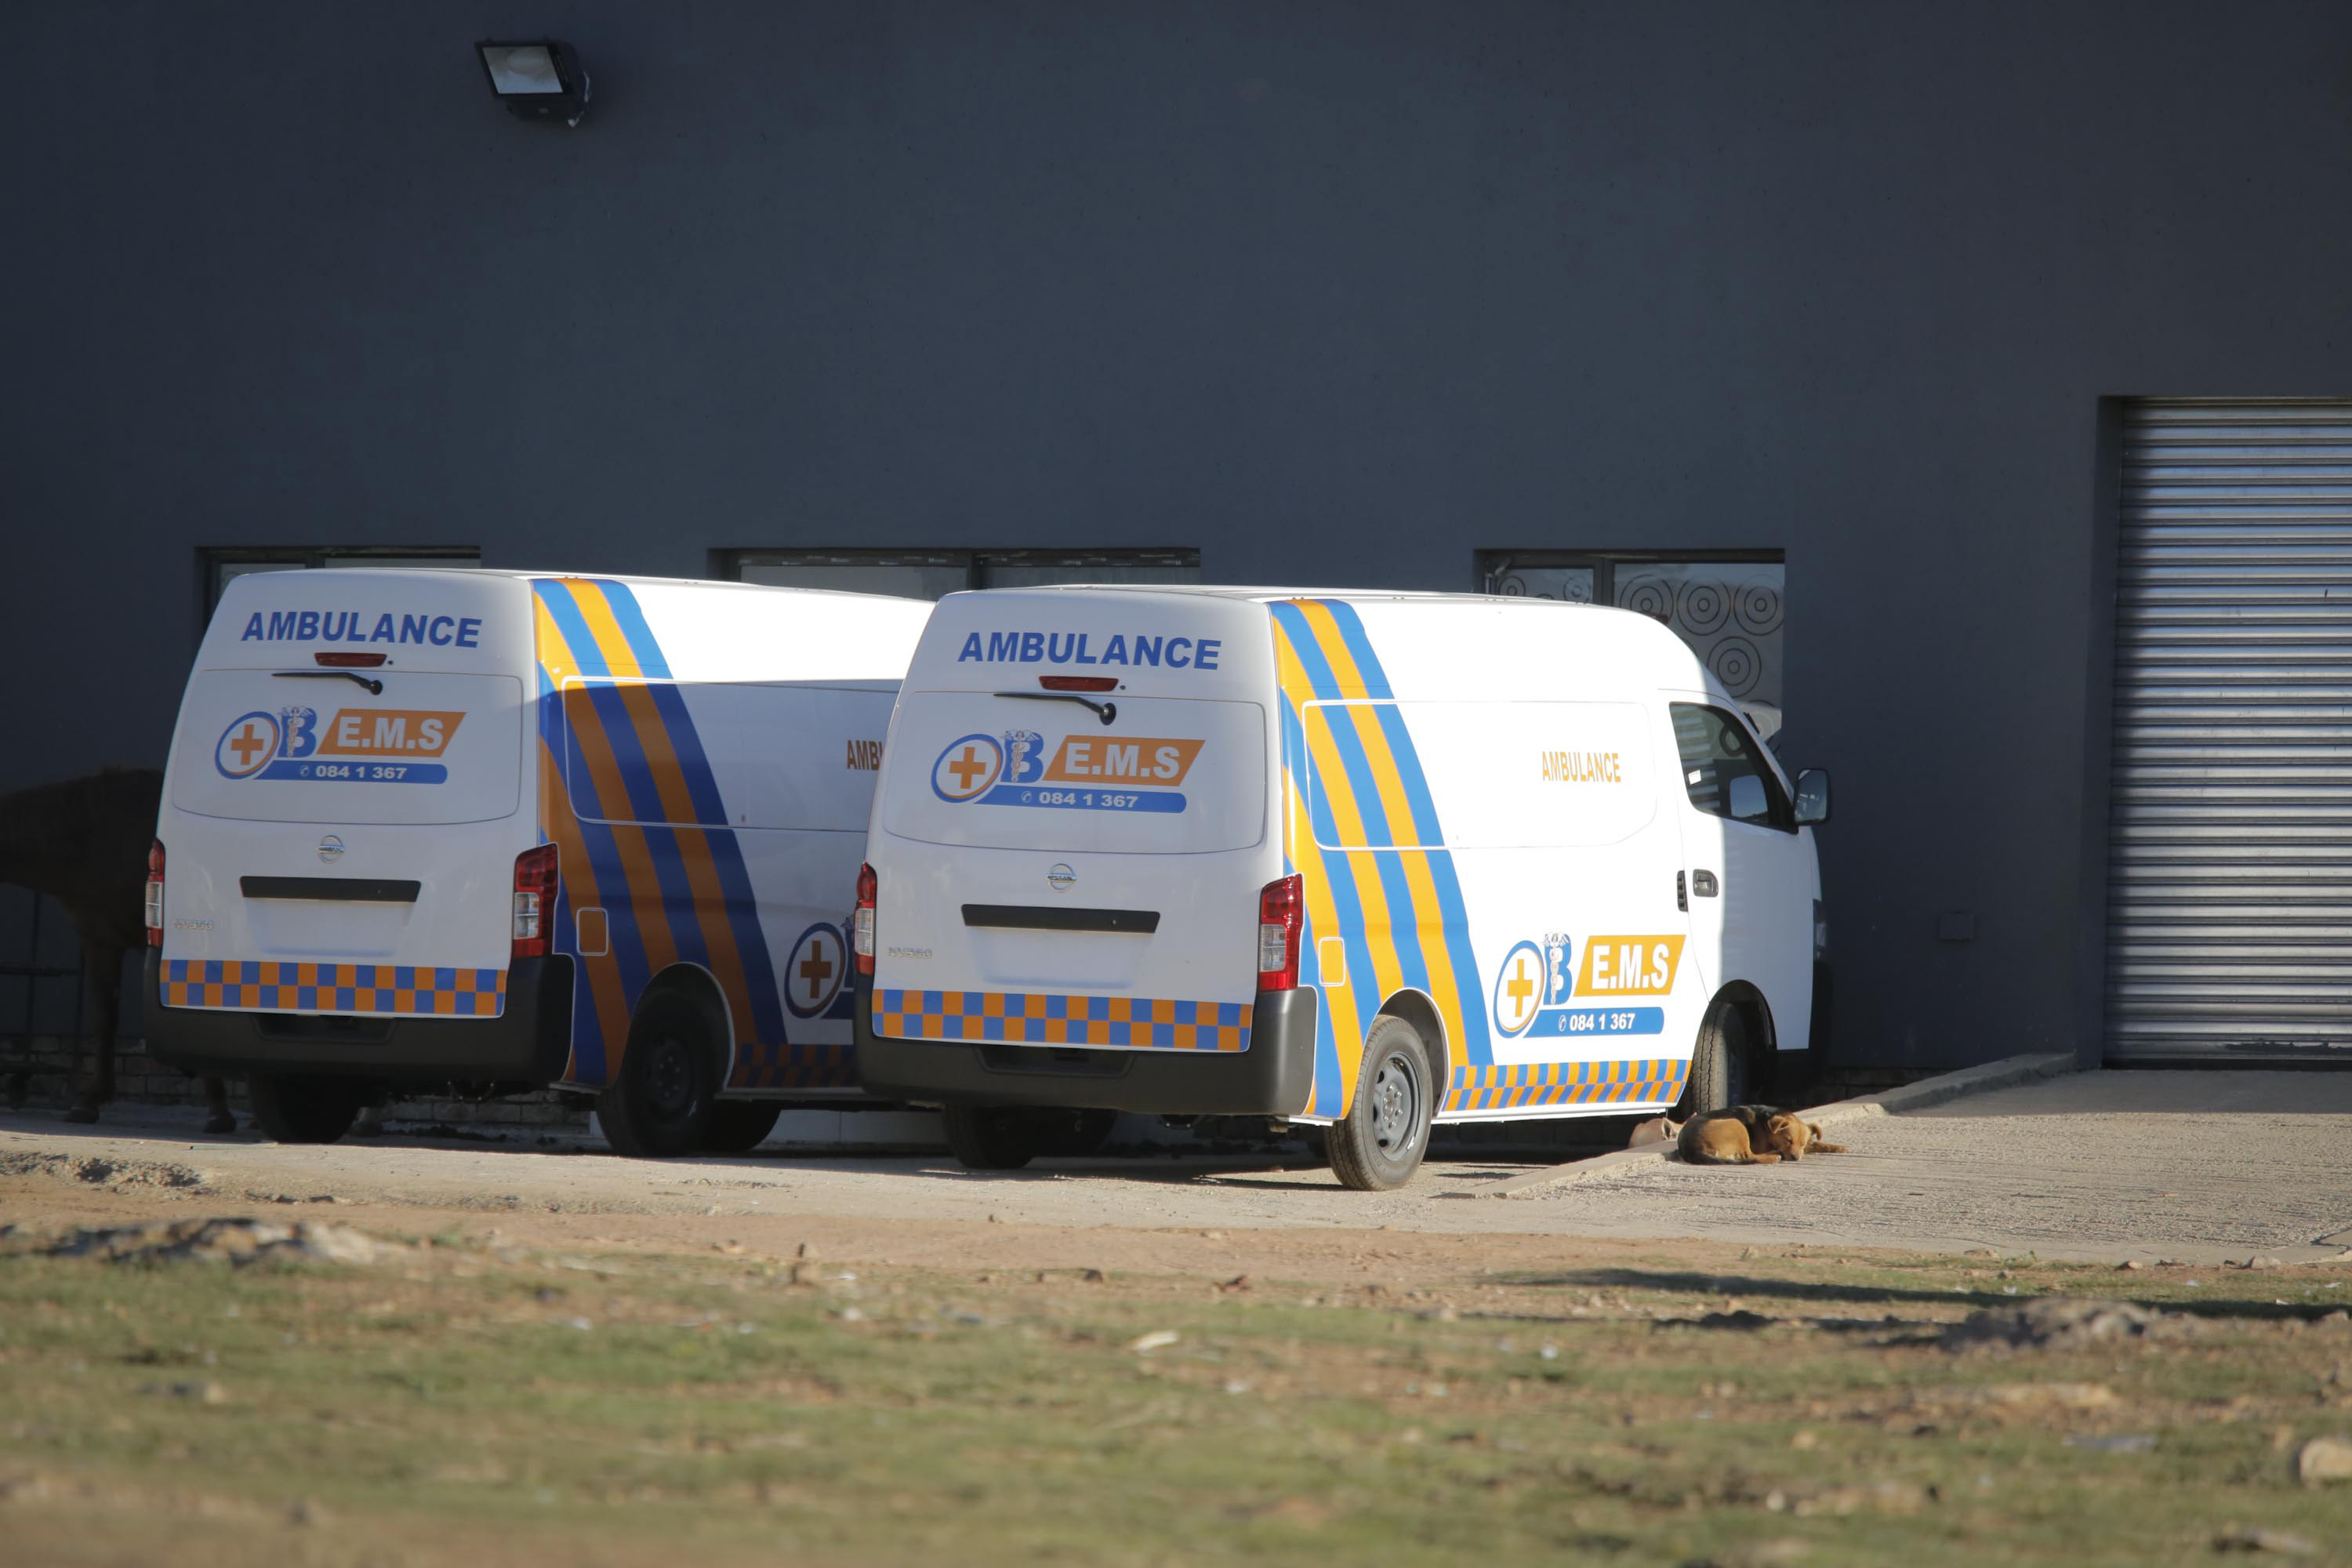 Spotlight: Controversial ambulance company in line for